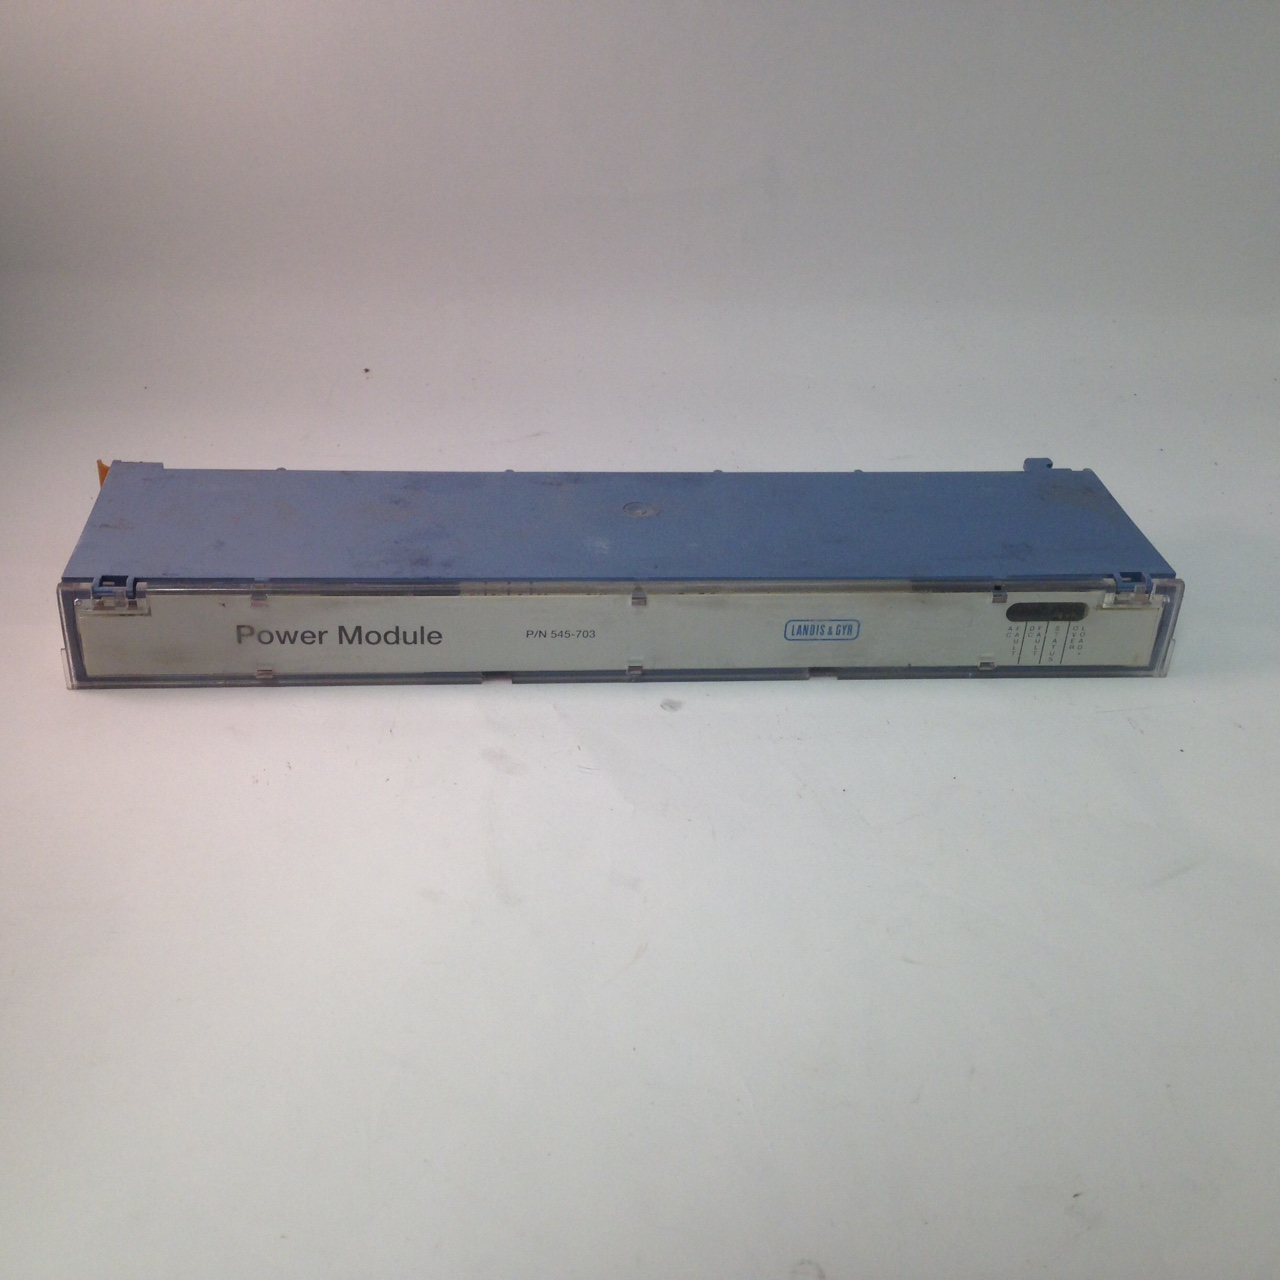 Siemens Power Module, Used, Removed from working job, has some cosmetic wear